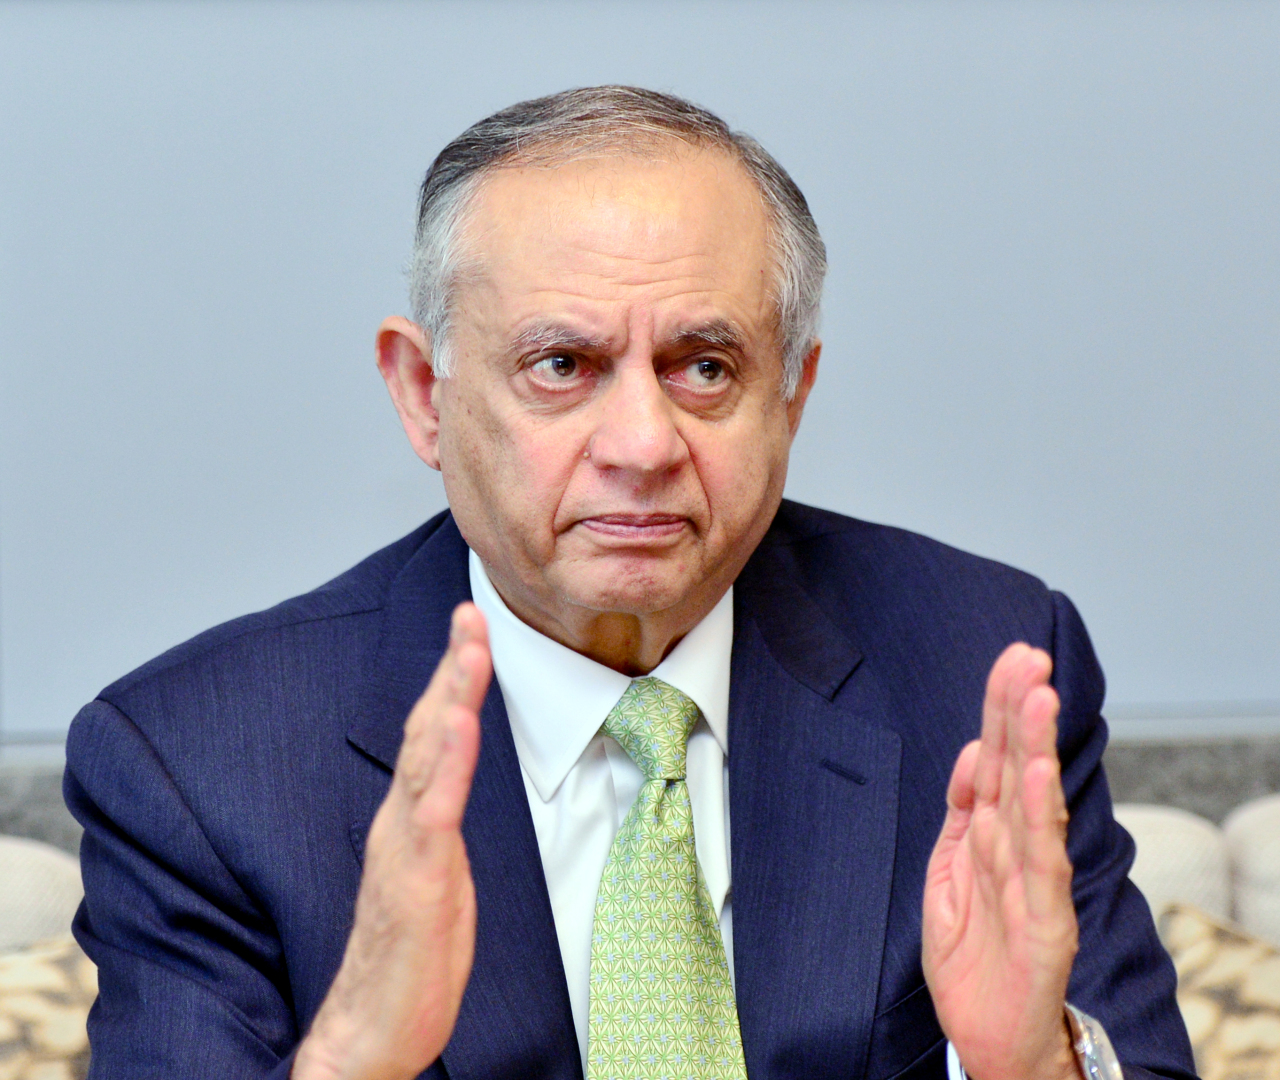 Abdul Razak Dawood, Pakistan's adviser to the prime minister on commerce, textile, industries and production and investment, speaks during an interview with The Korea Herald on Thursday. (Park Hyun-koo/The Korea Herald)